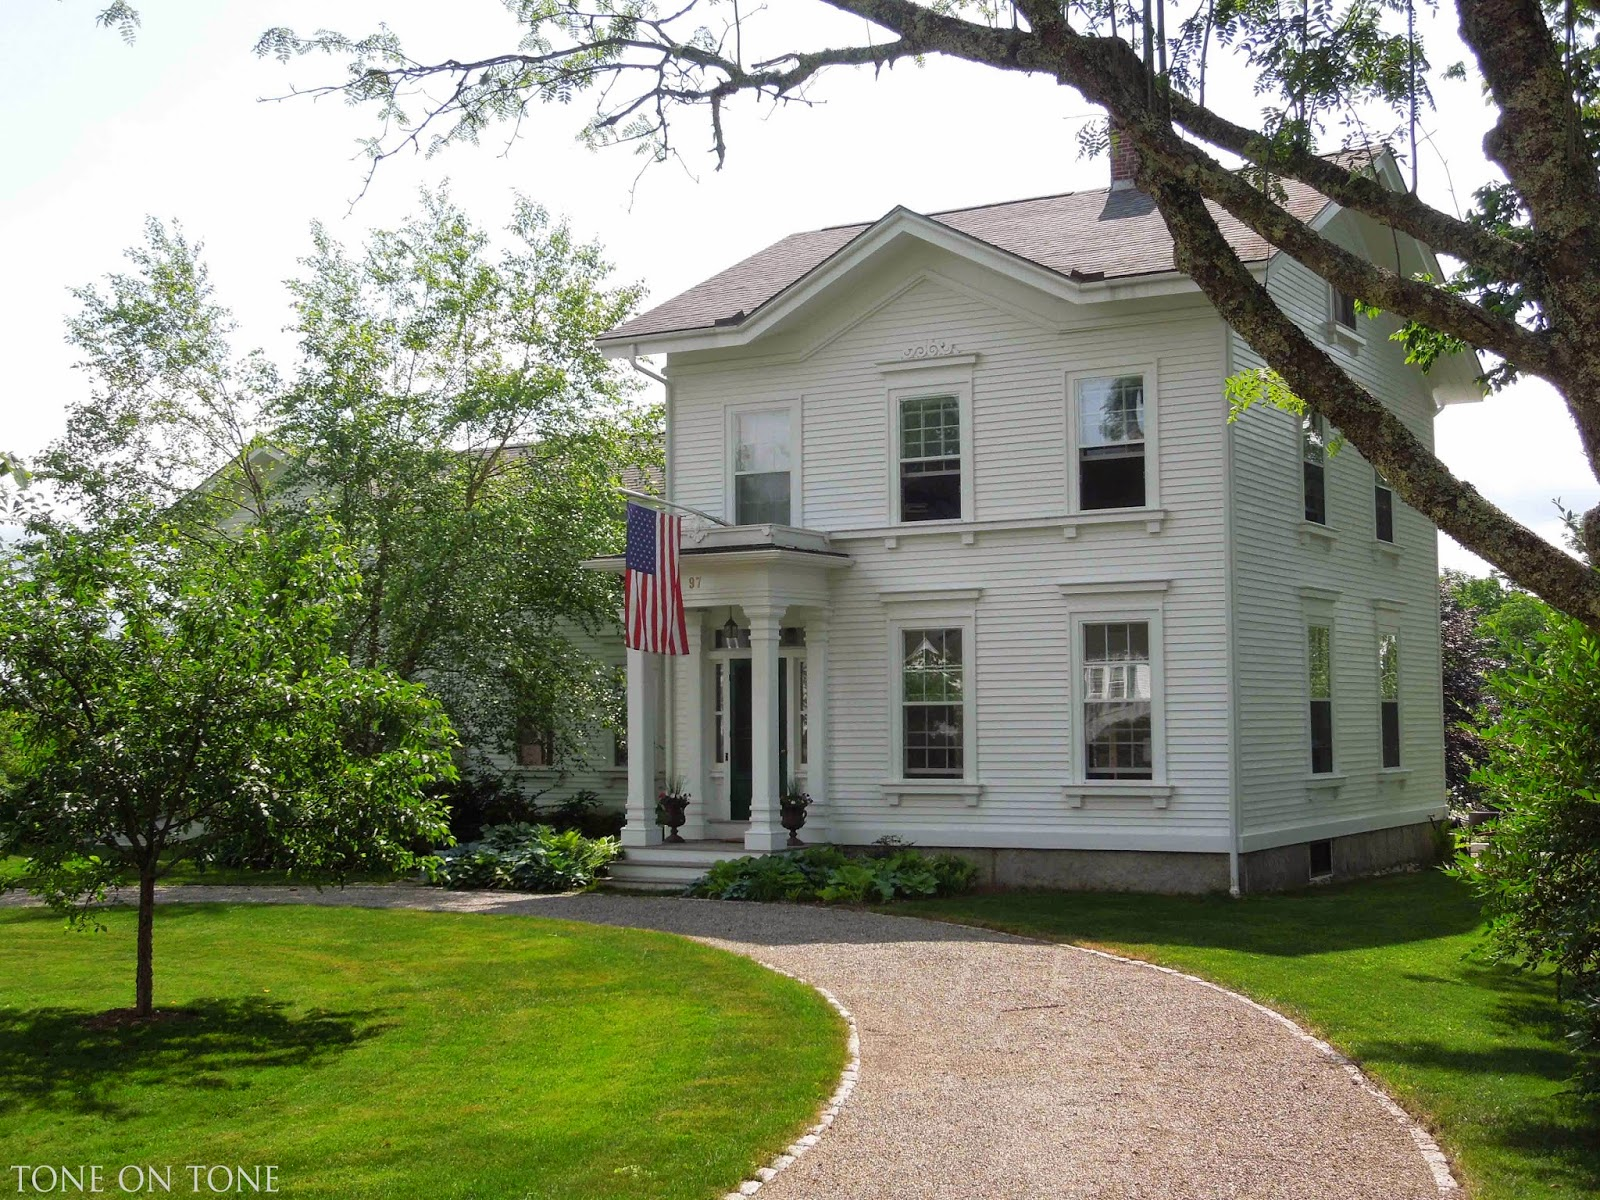 Beautiful White Colonial House in Castine Maine from Tone on Tone | Friday Favorites at www.andersonandgrant.com